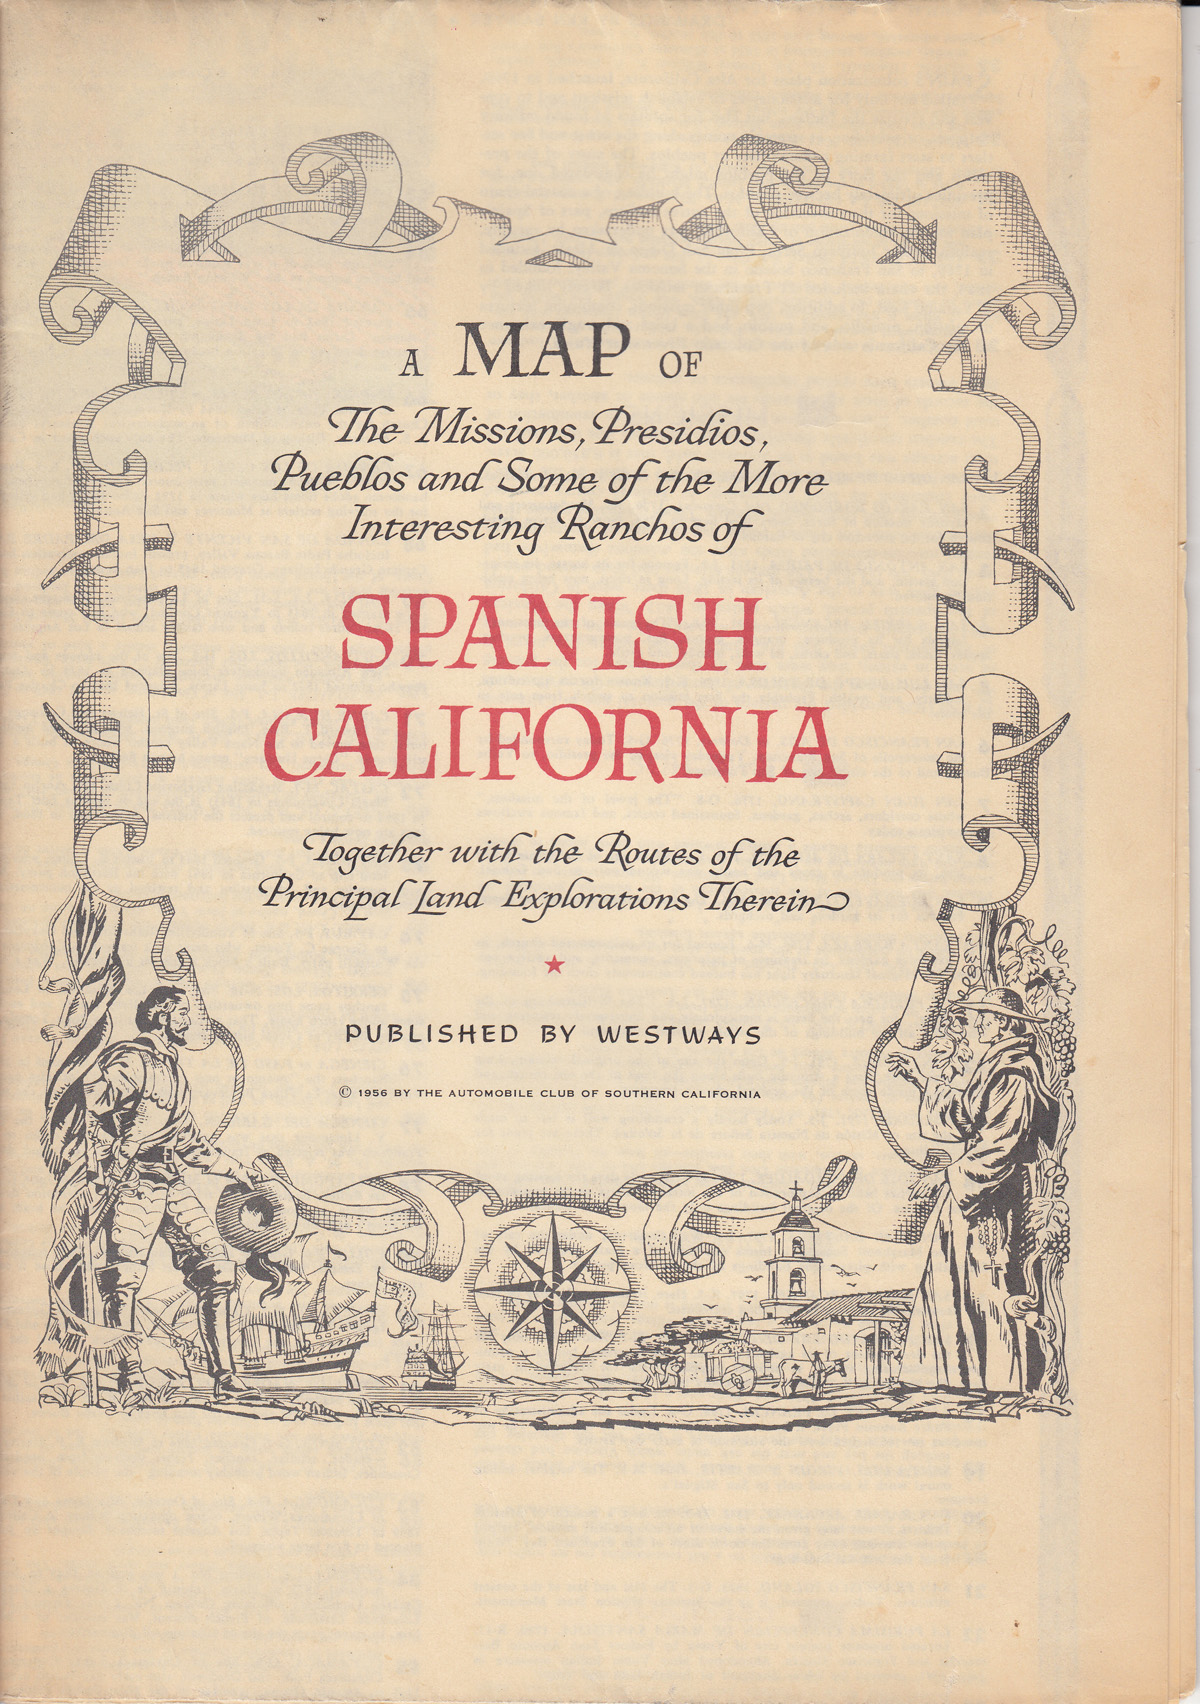 Missions In Southern California Map.A Map Of The Missions Presidios Pueblos And Some Of The More Interesting Ranchos Of Spanish California Together With The Routes Of The Principal